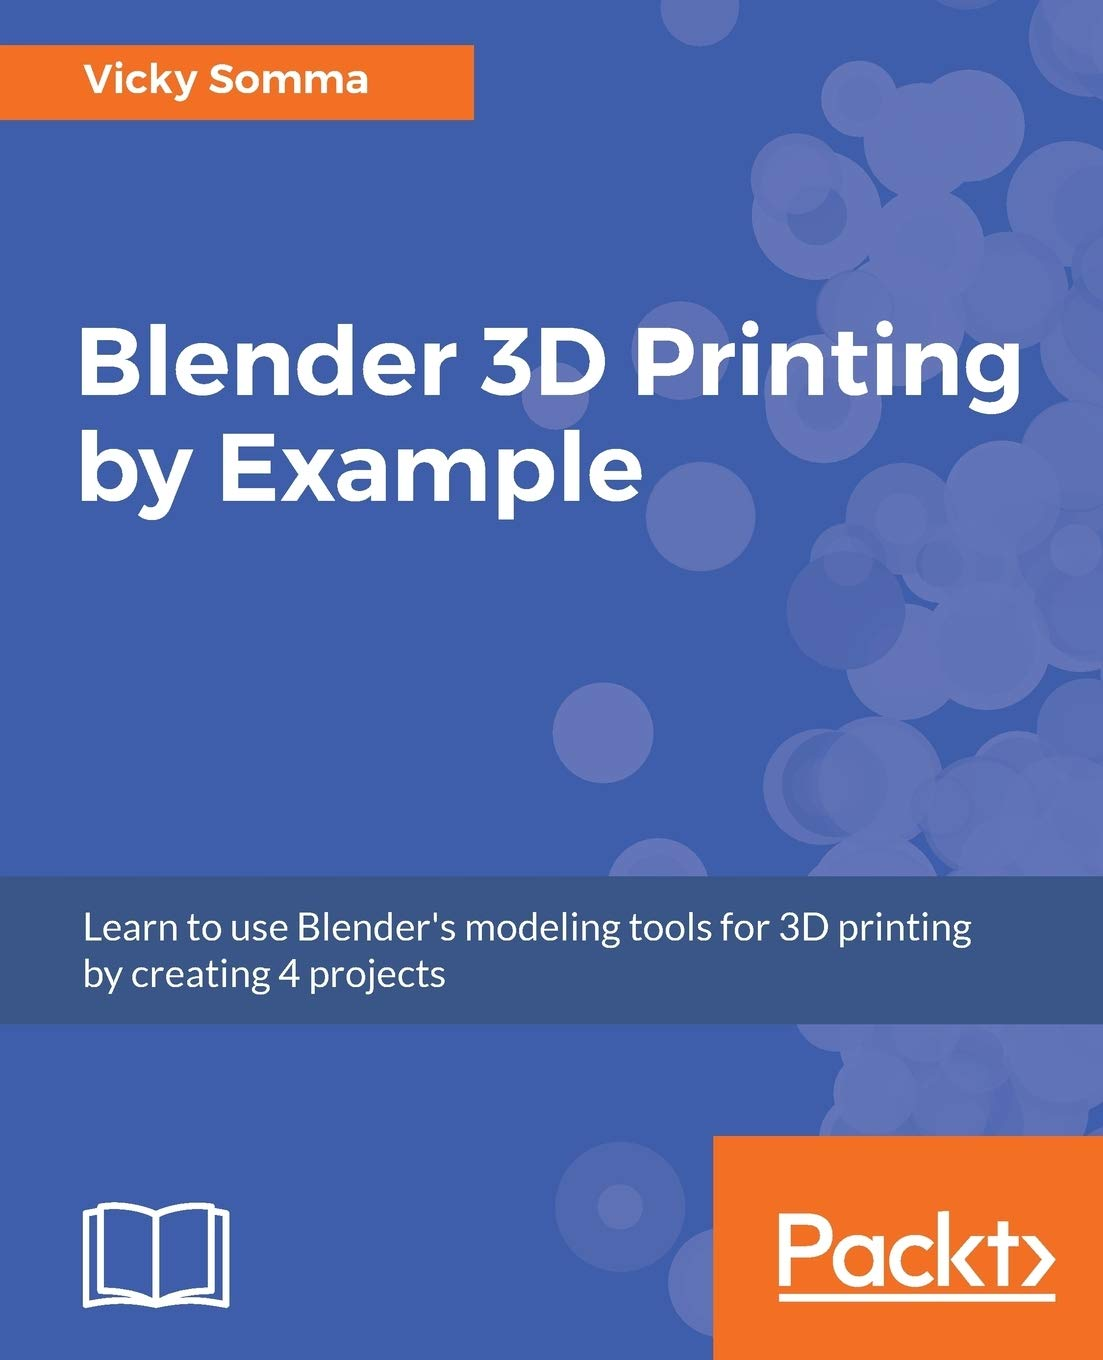 Blender 3D Printing by Example